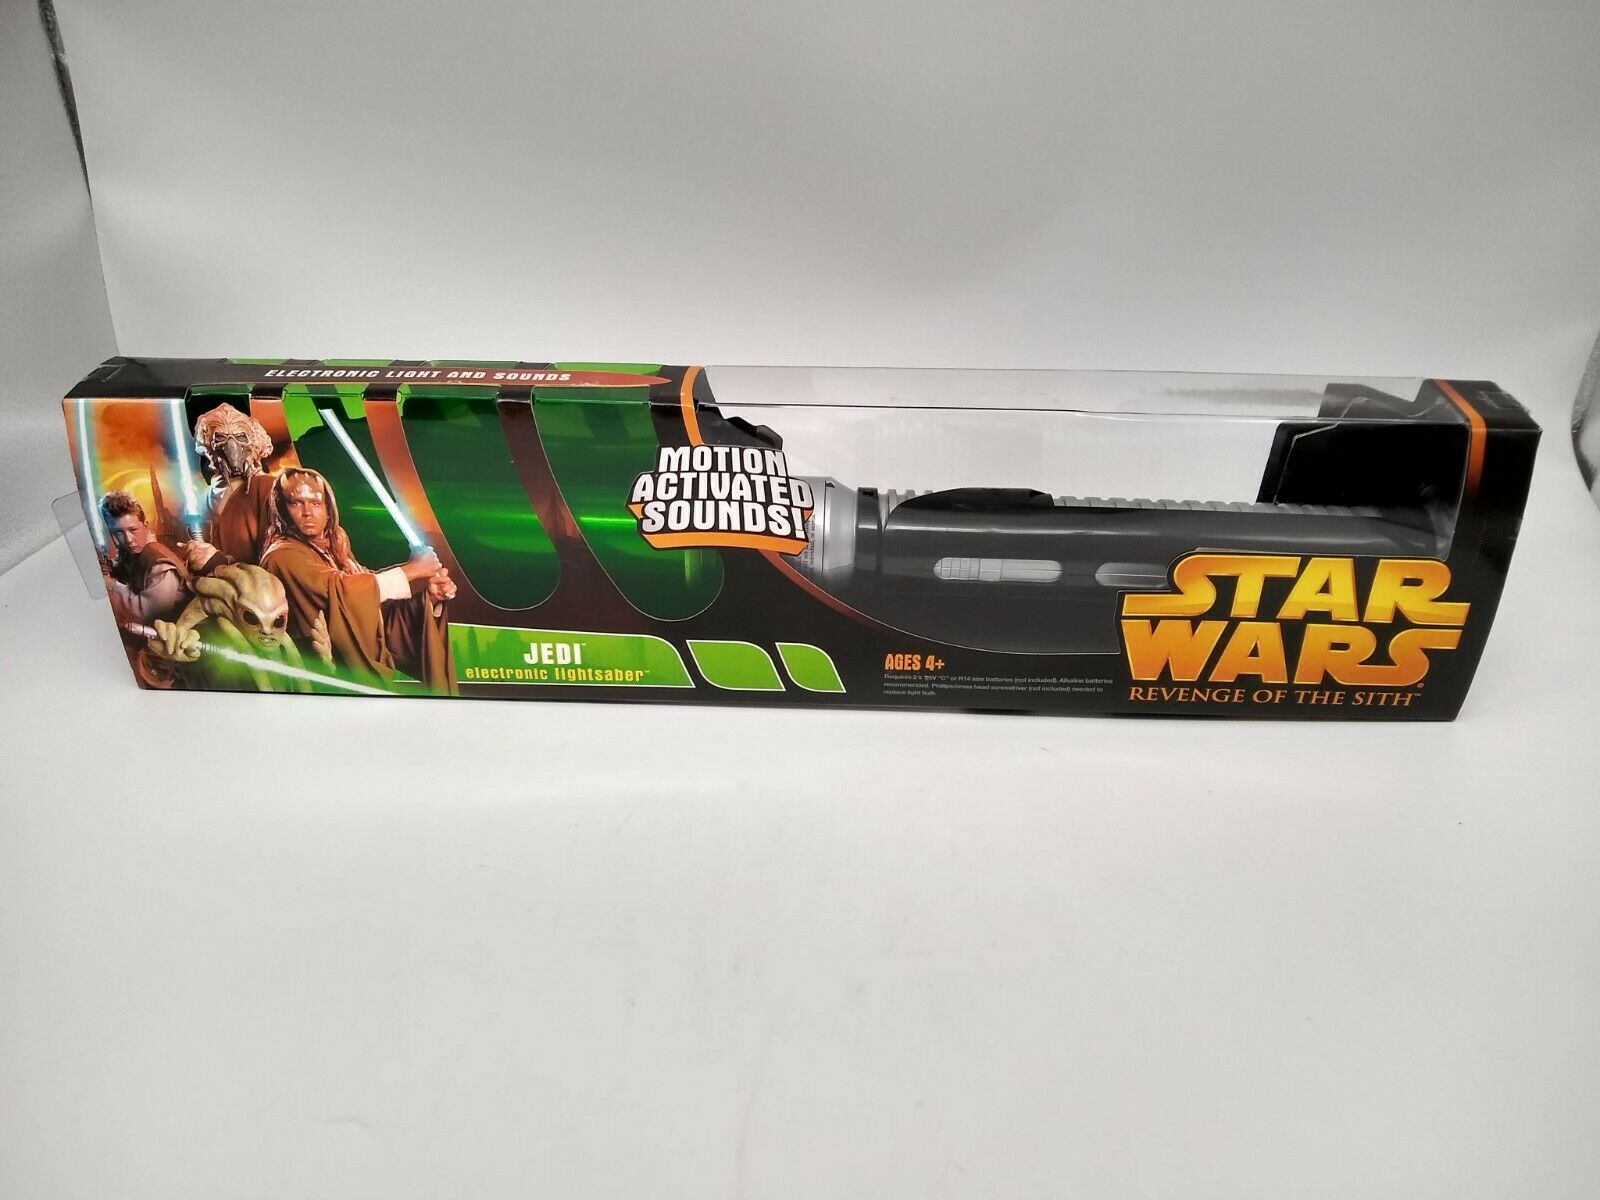 Star Wars Revenge of the Sith Jedi Electronic Lightsaber - Factory Sealed